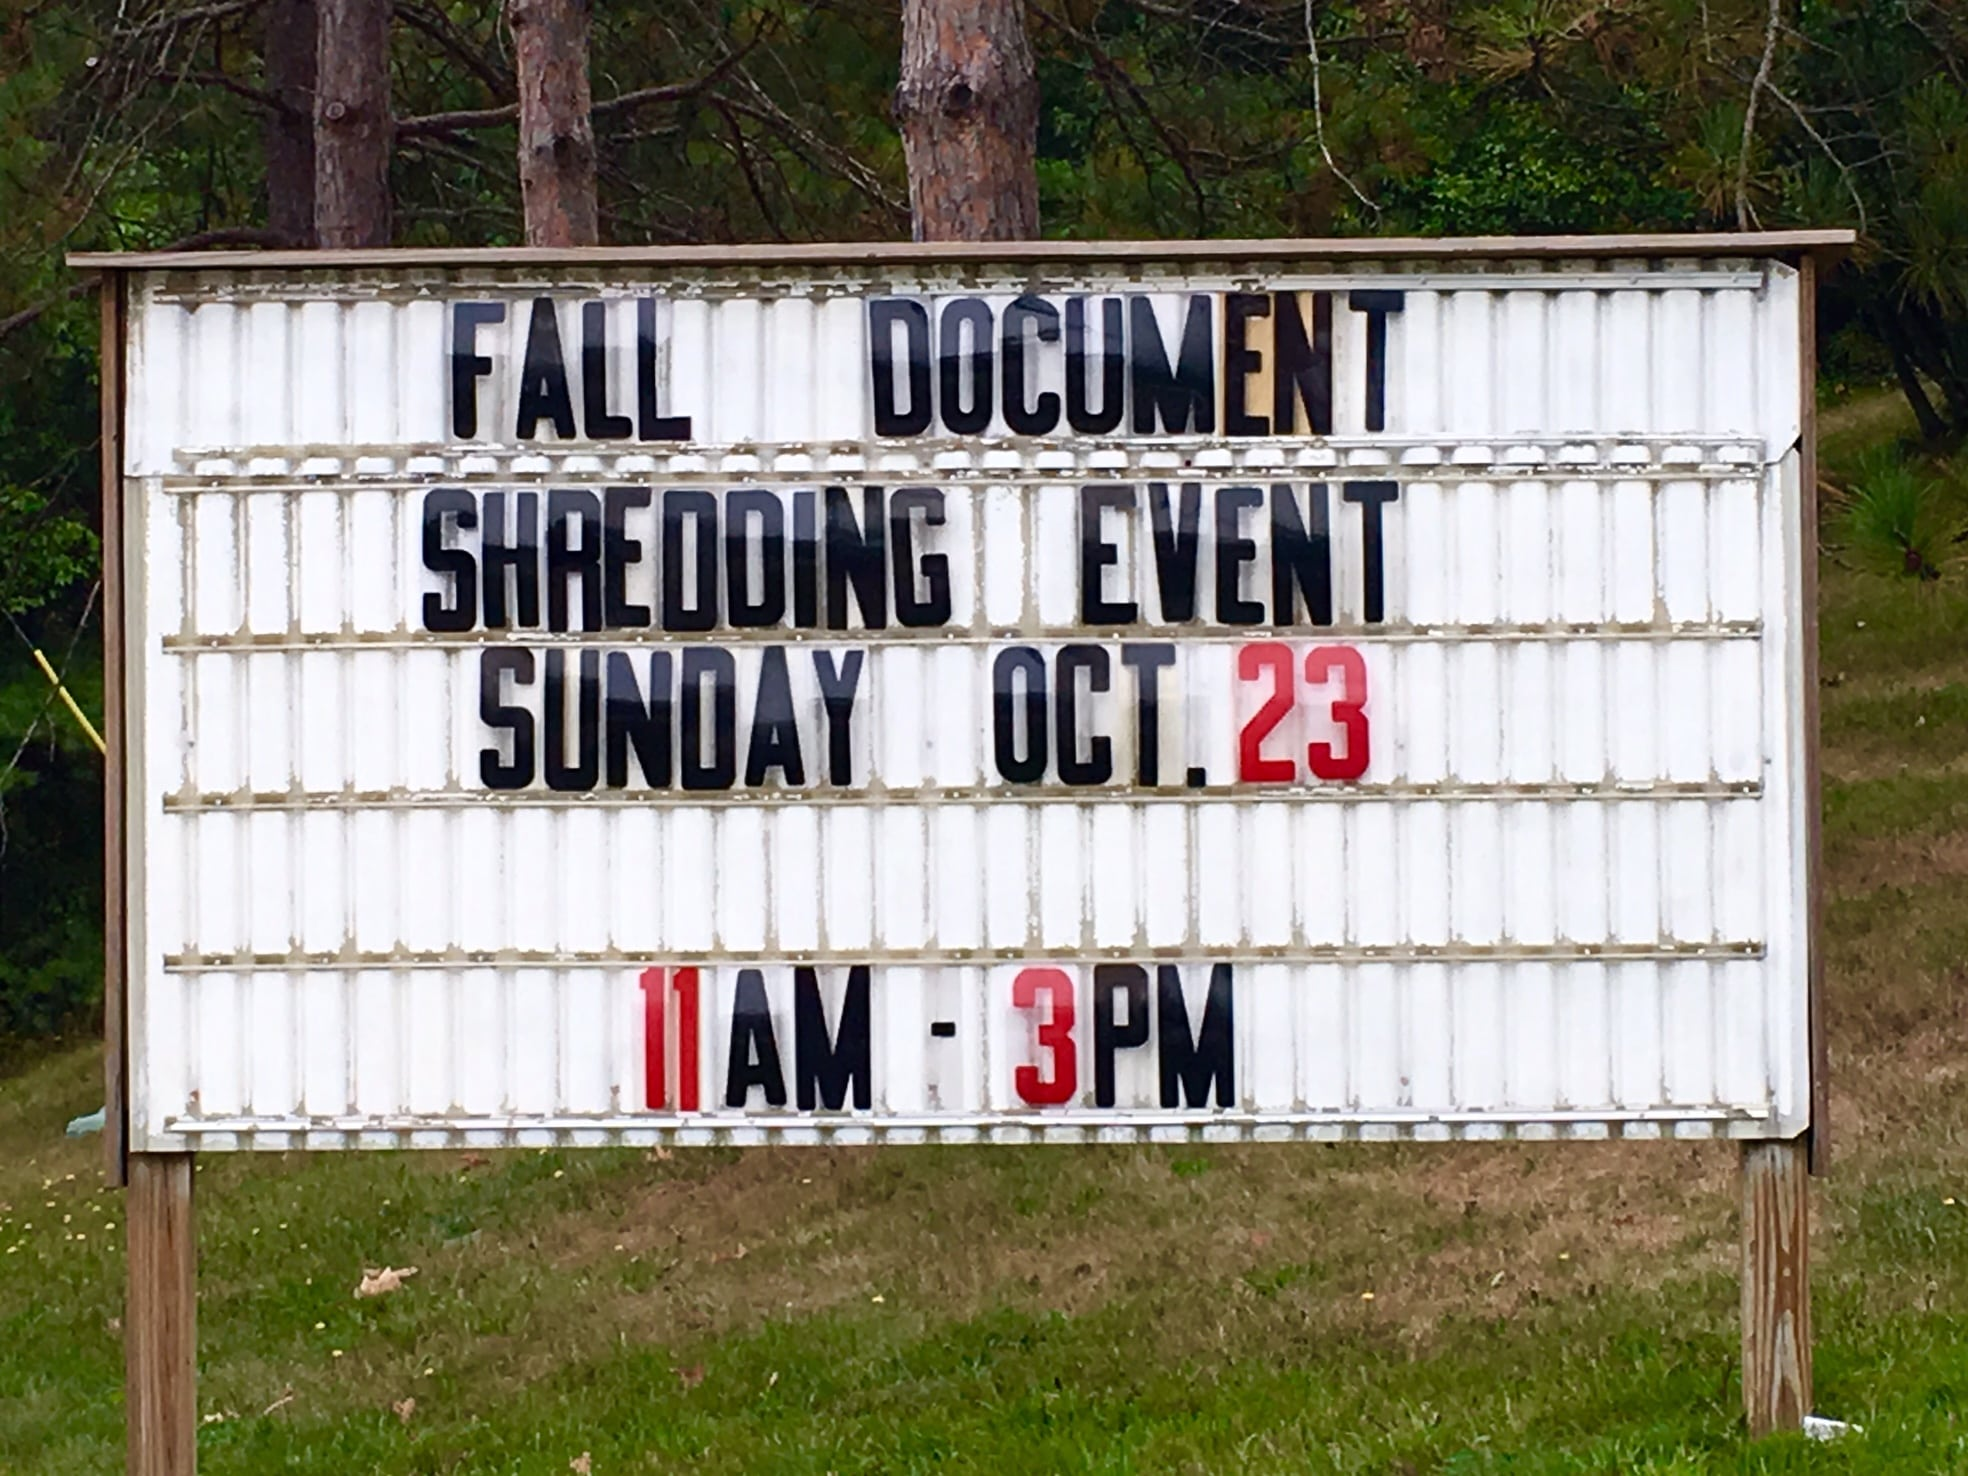 Wellesley RDF, Shredding event